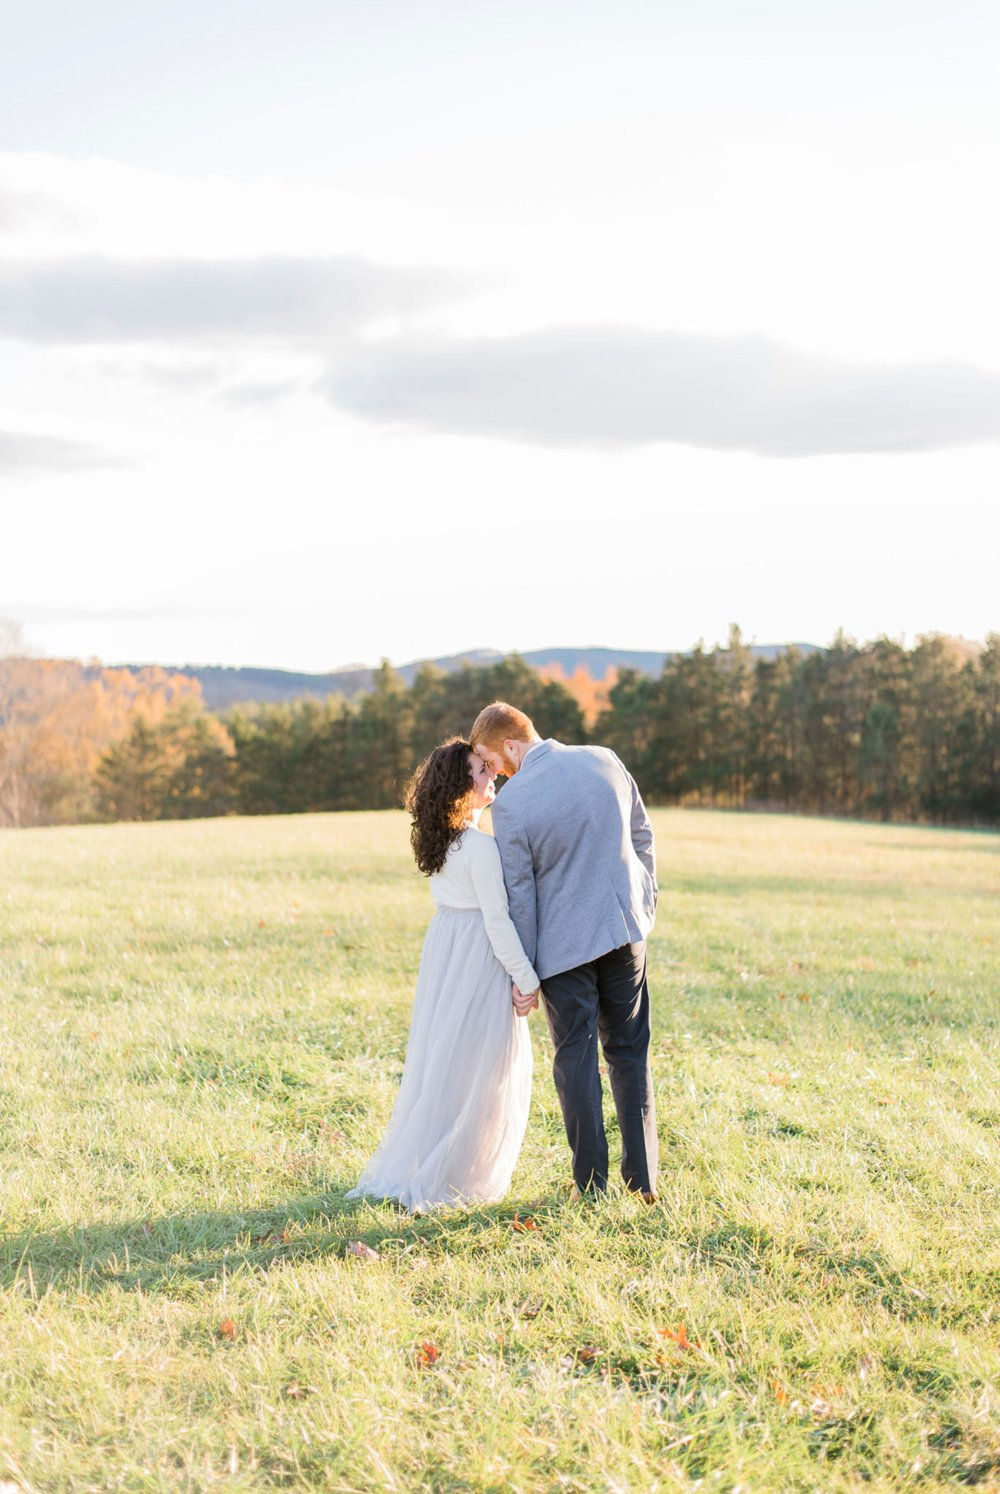 SorellaFarms_EngagementSession_VirginiaweddingPhotographer 39.jpg